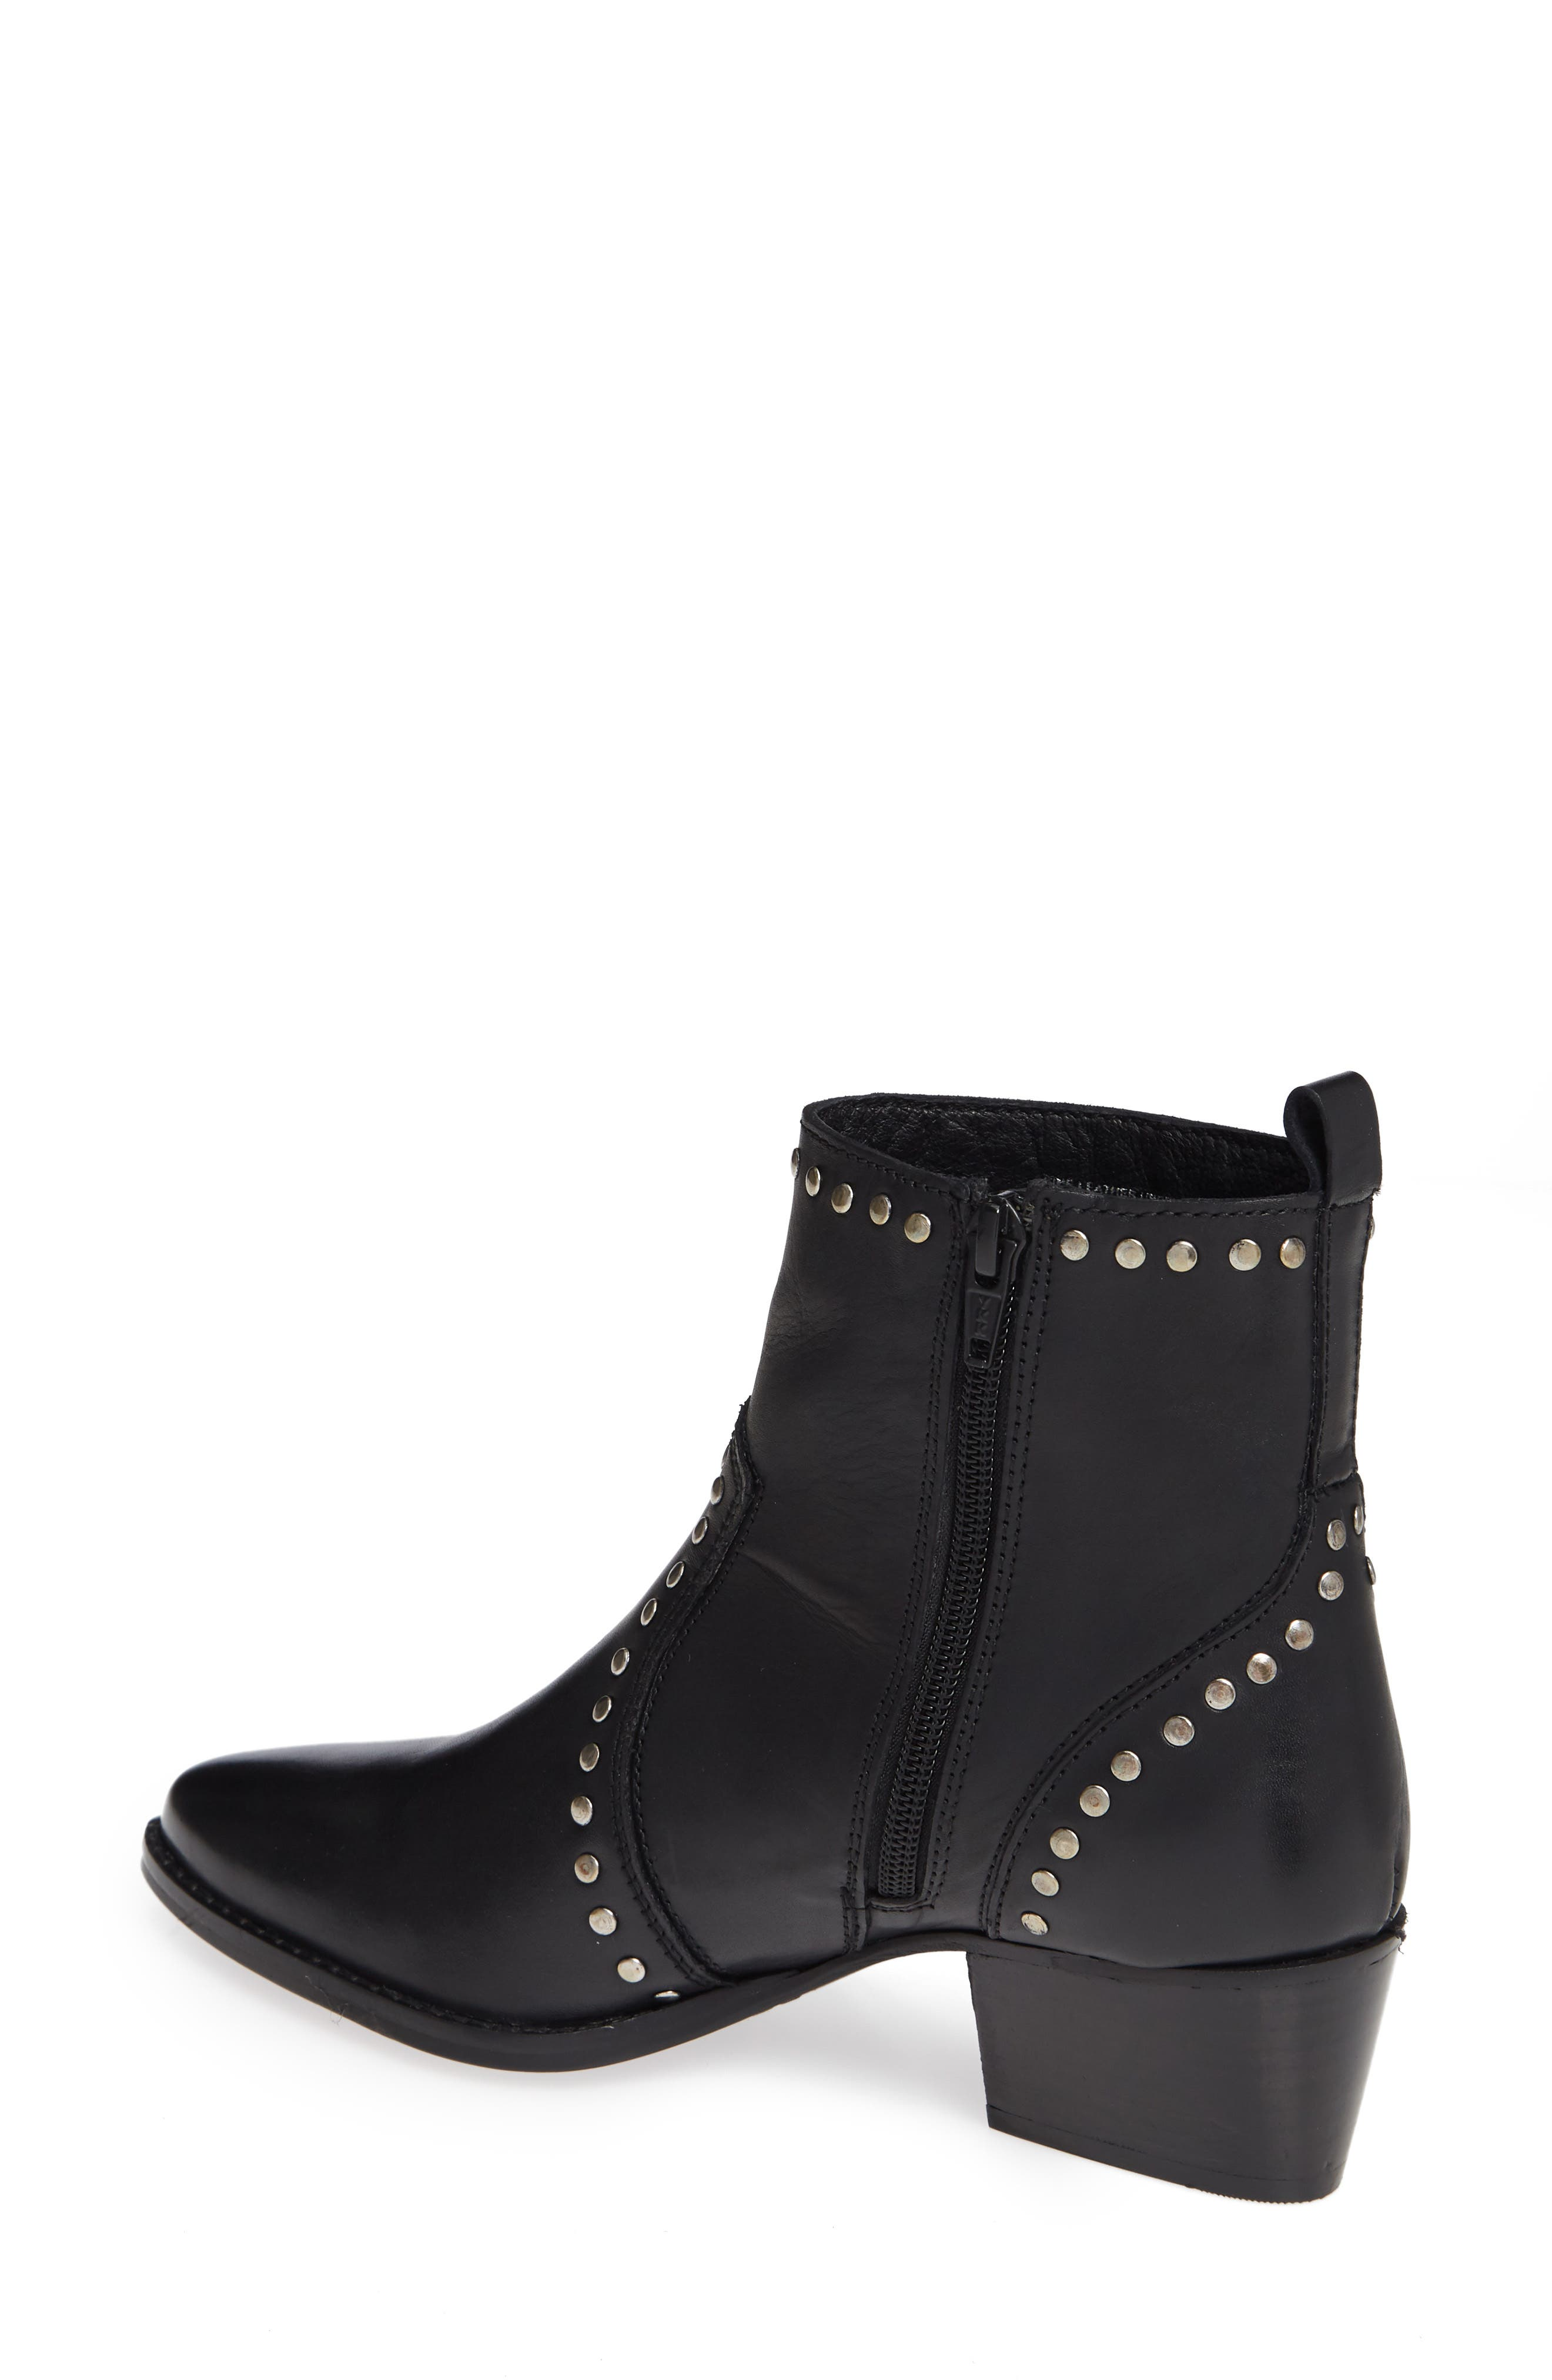 CHARLES BY CHARLES DAVID, Zye Bootie, Alternate thumbnail 2, color, BLACK LEATHER